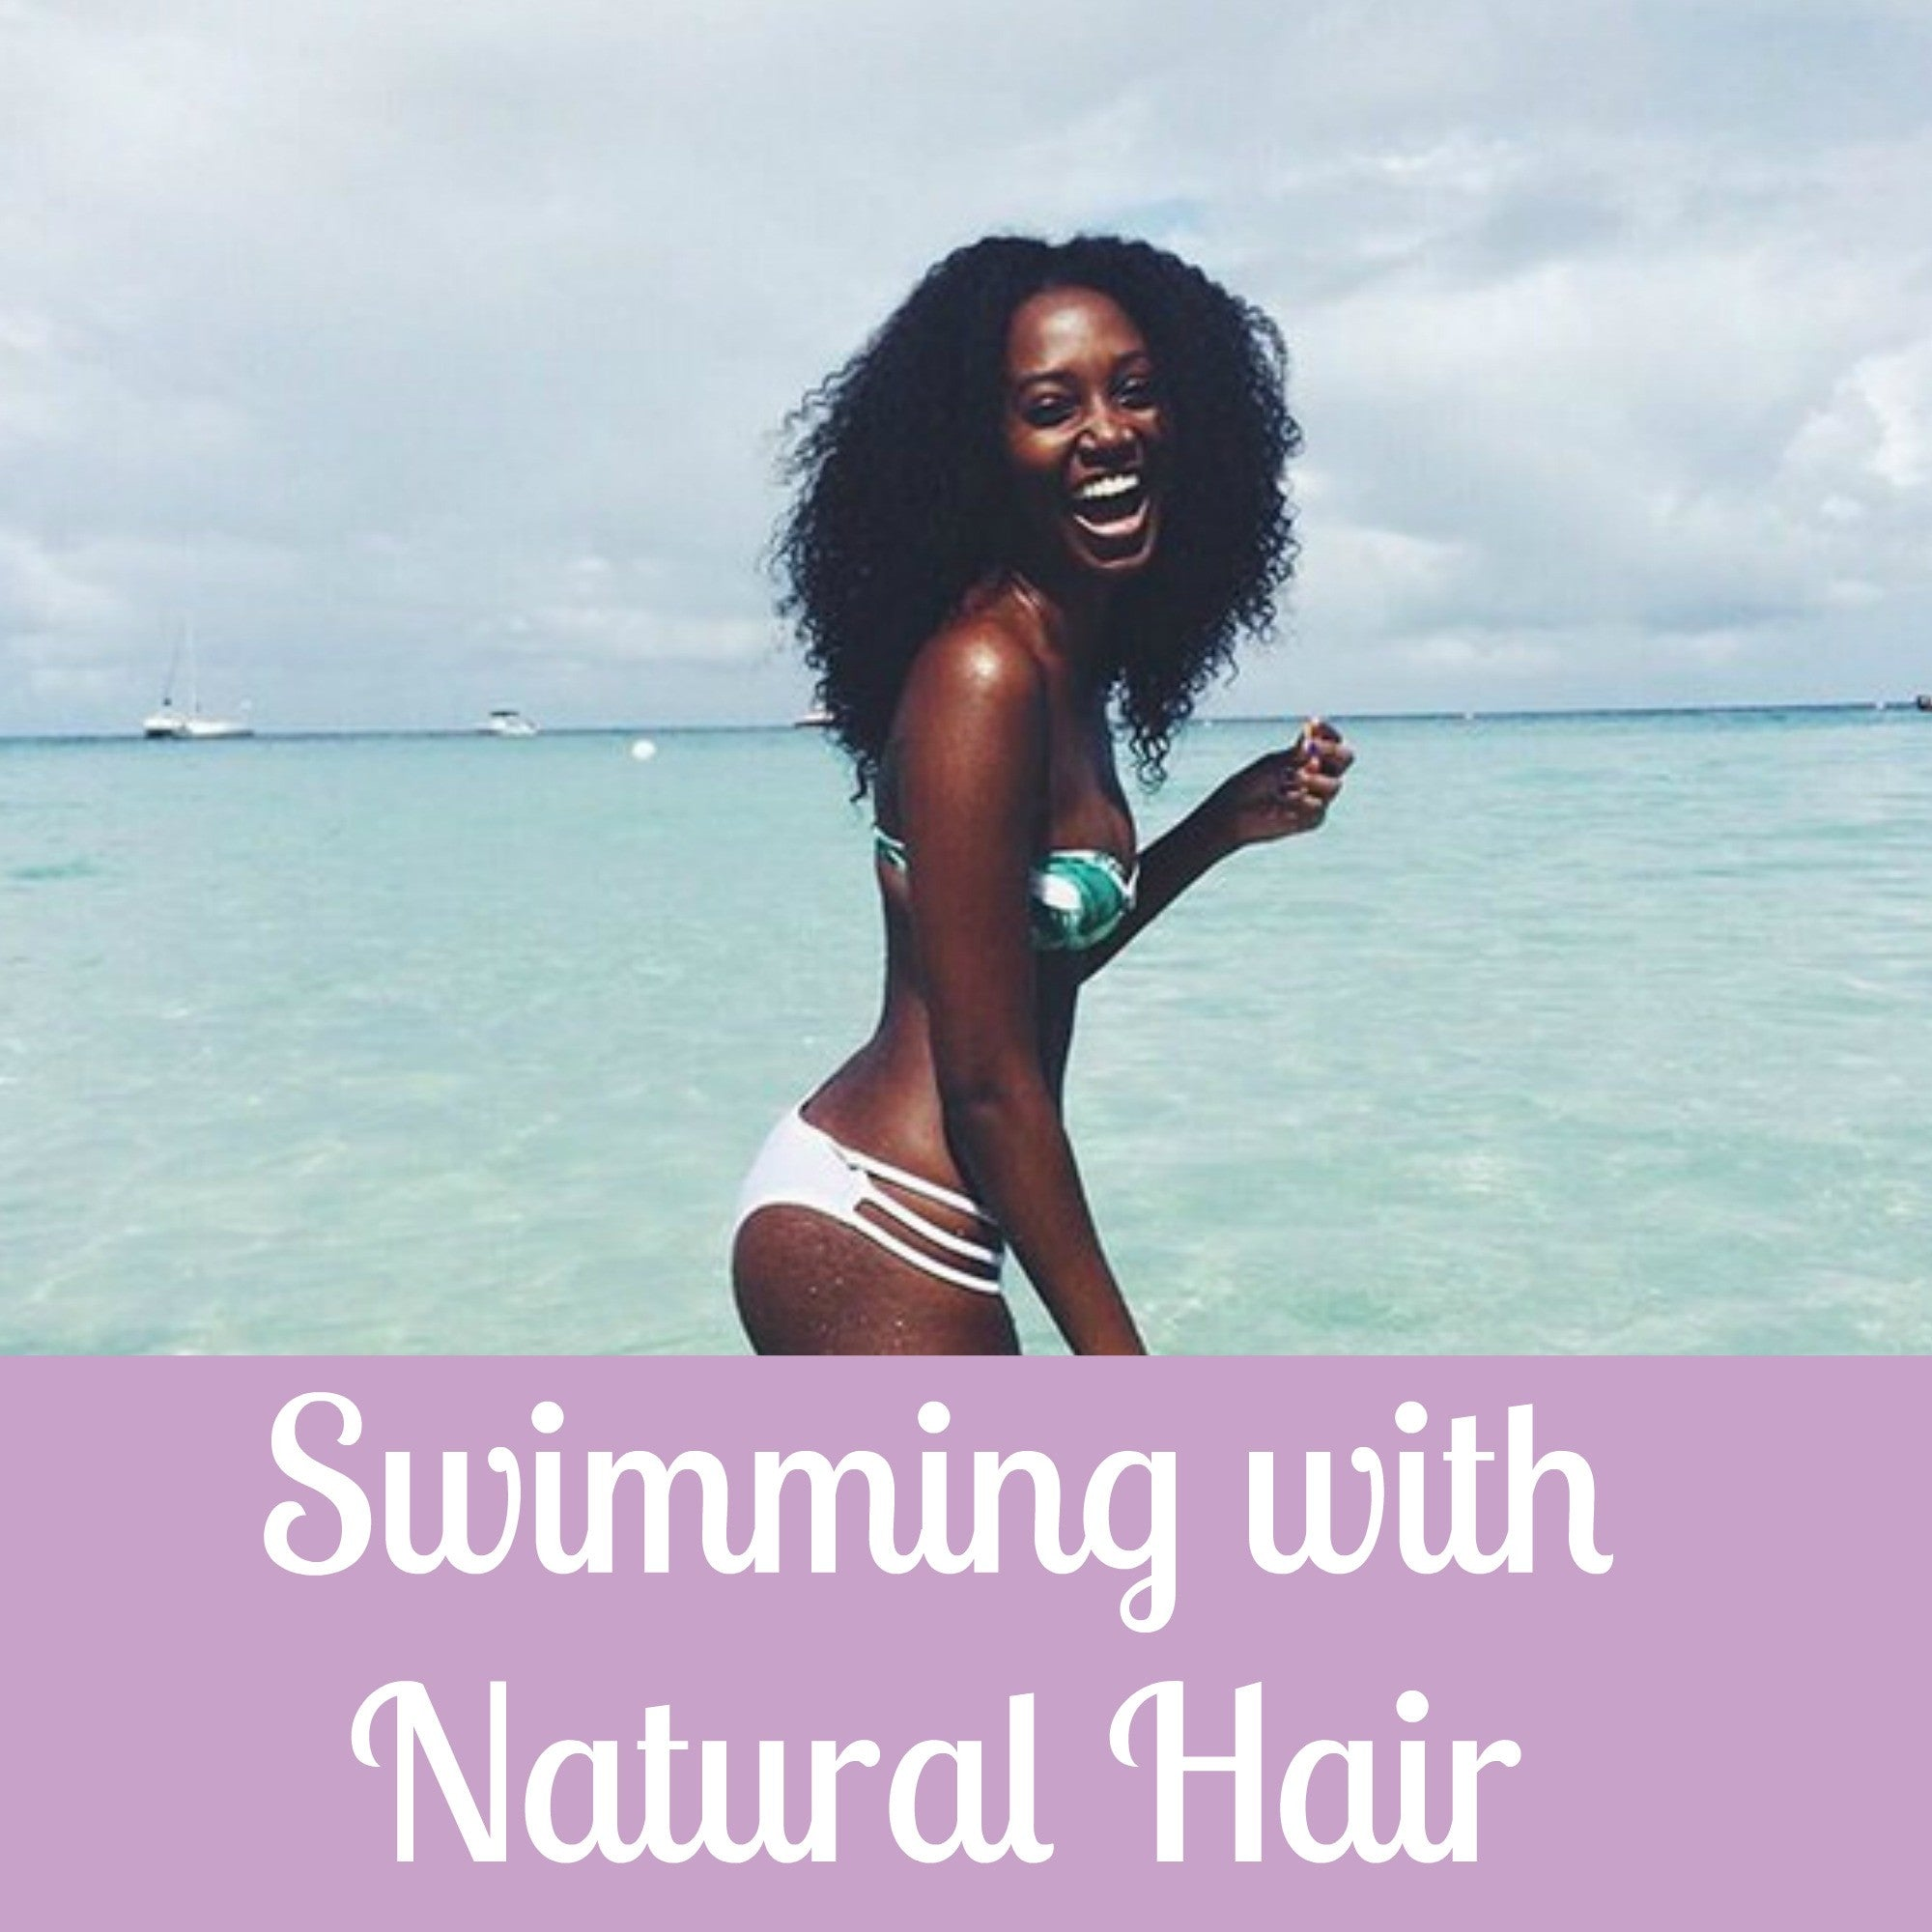 Tips for Swimming with Natural Hair